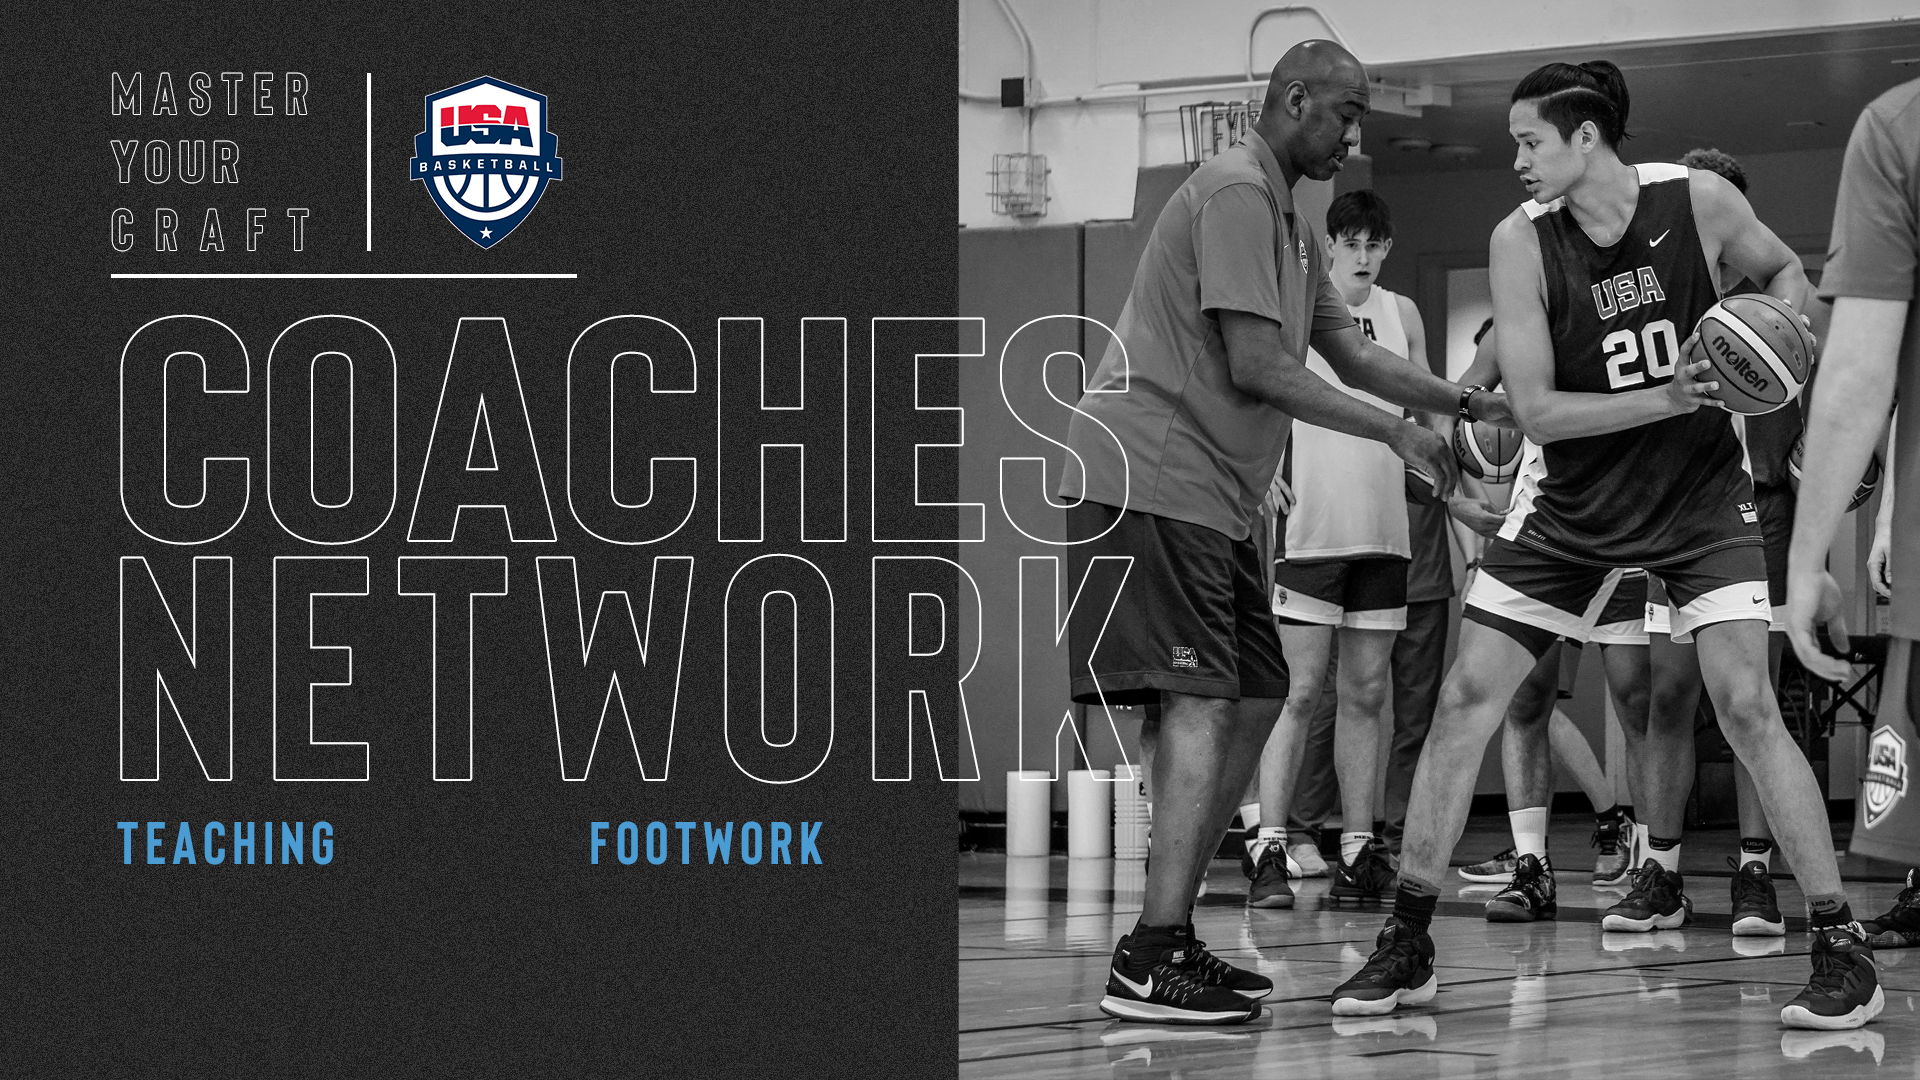 Coaches Network Teaching Footwork